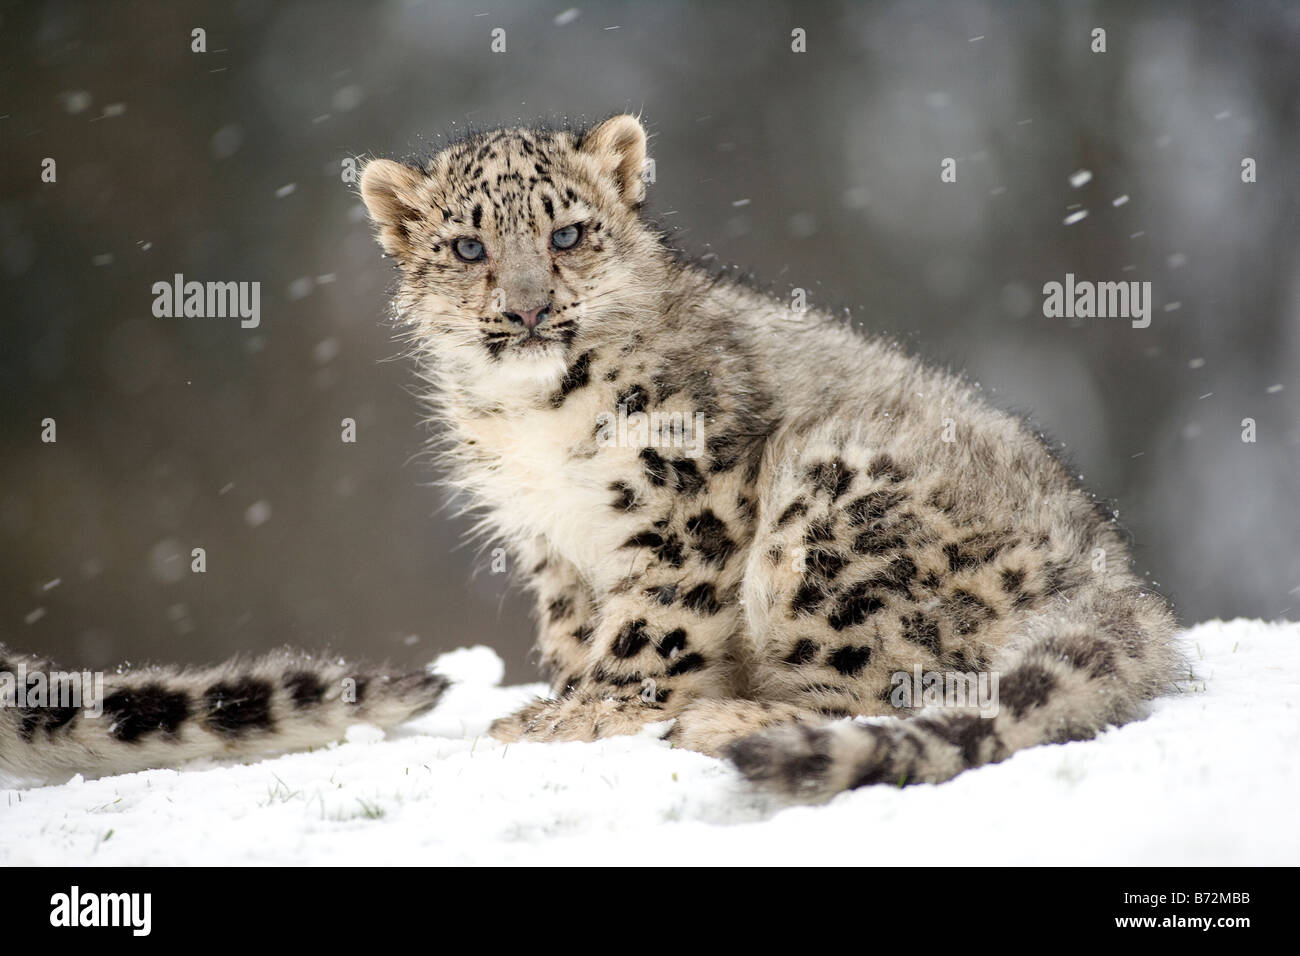 Snow Leopard Cub dans la neige Photo Stock